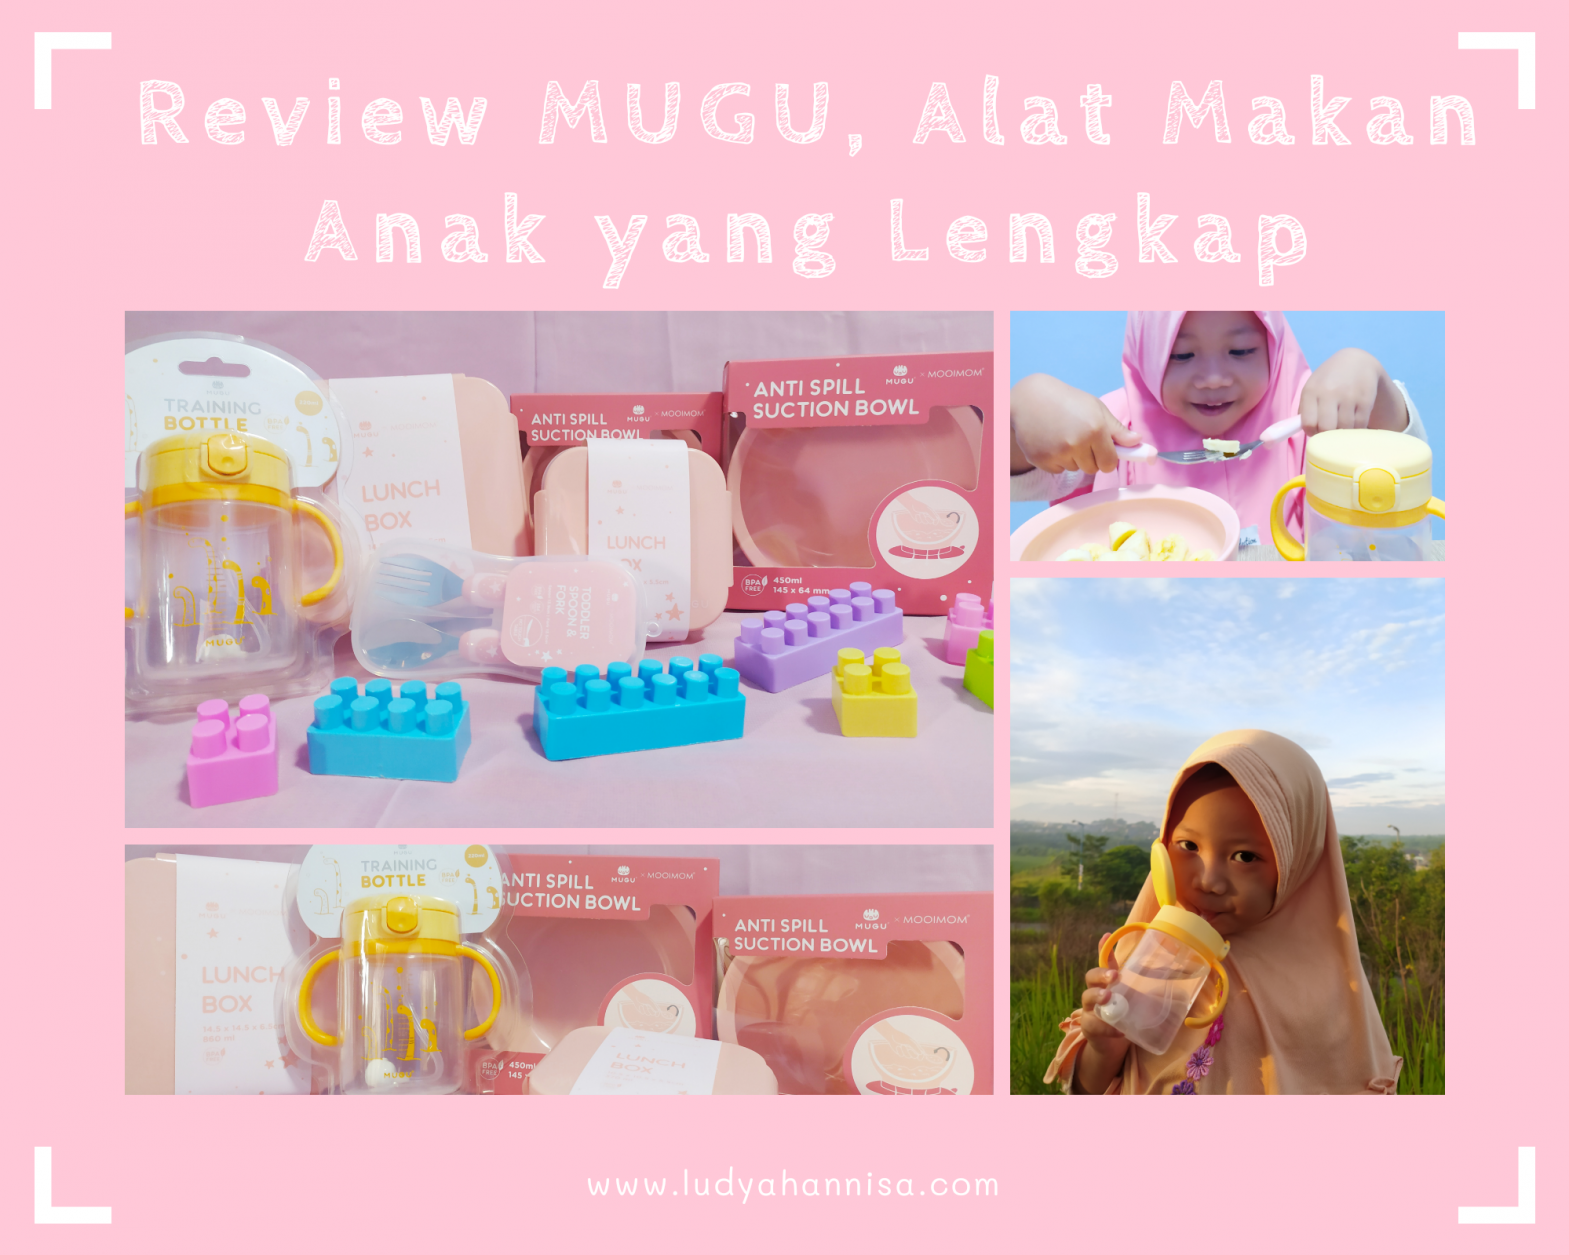 Review MUGU